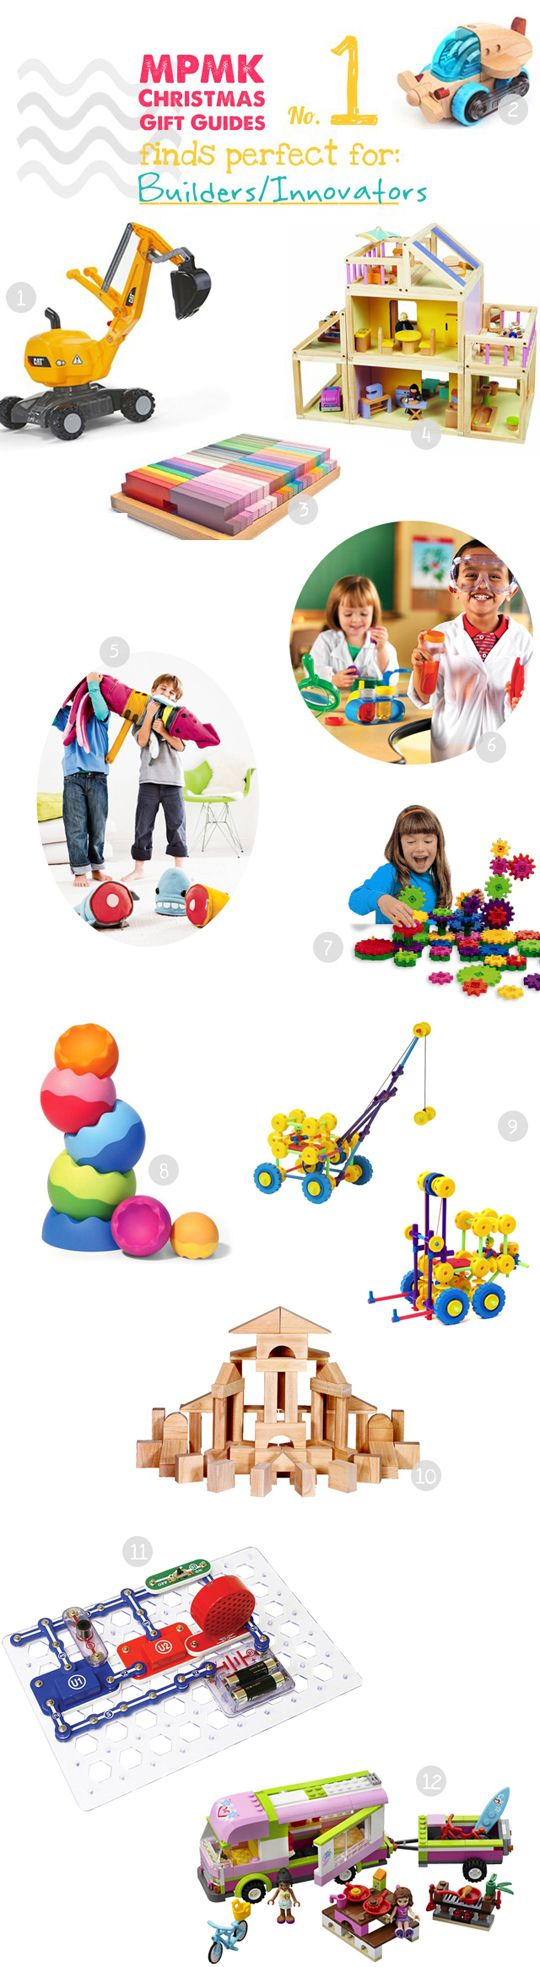 Check out a full list of 19 finds for little builders/innovators.